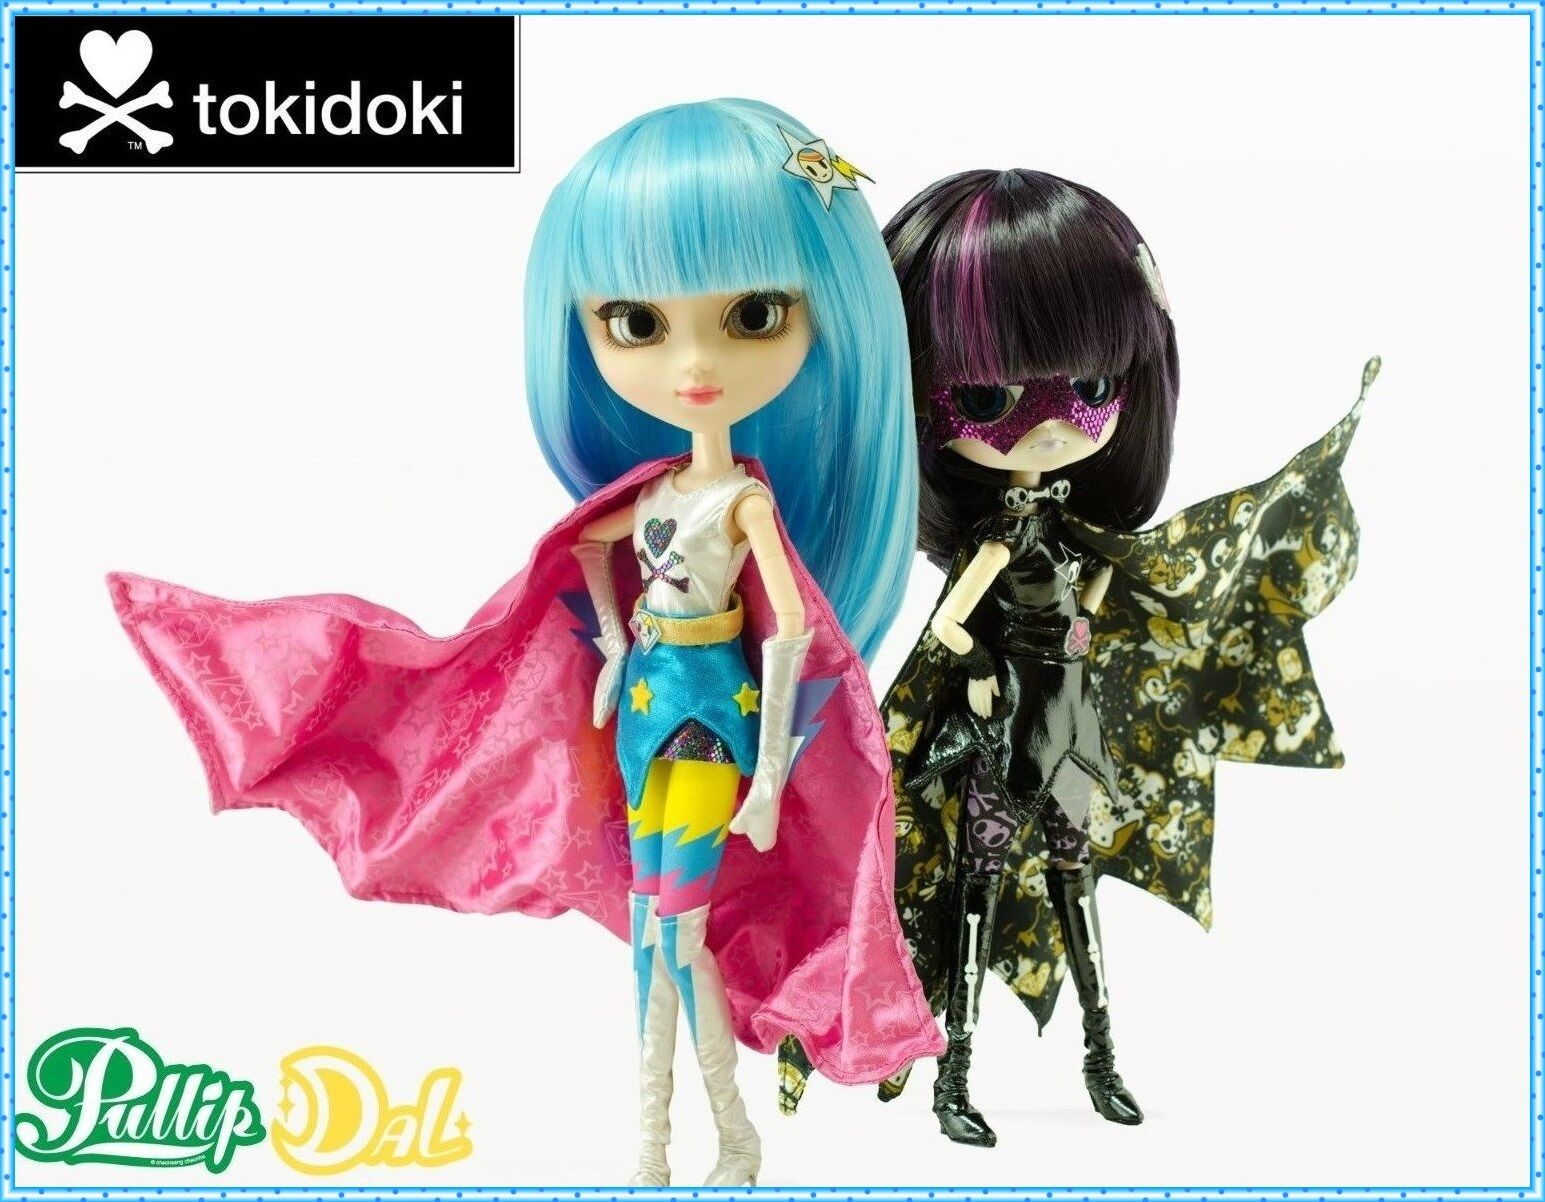 Sdcc 2014 Tokidoki X Pullip Super Stella & dal vendettina Muñeca Set Ltd Solo 250